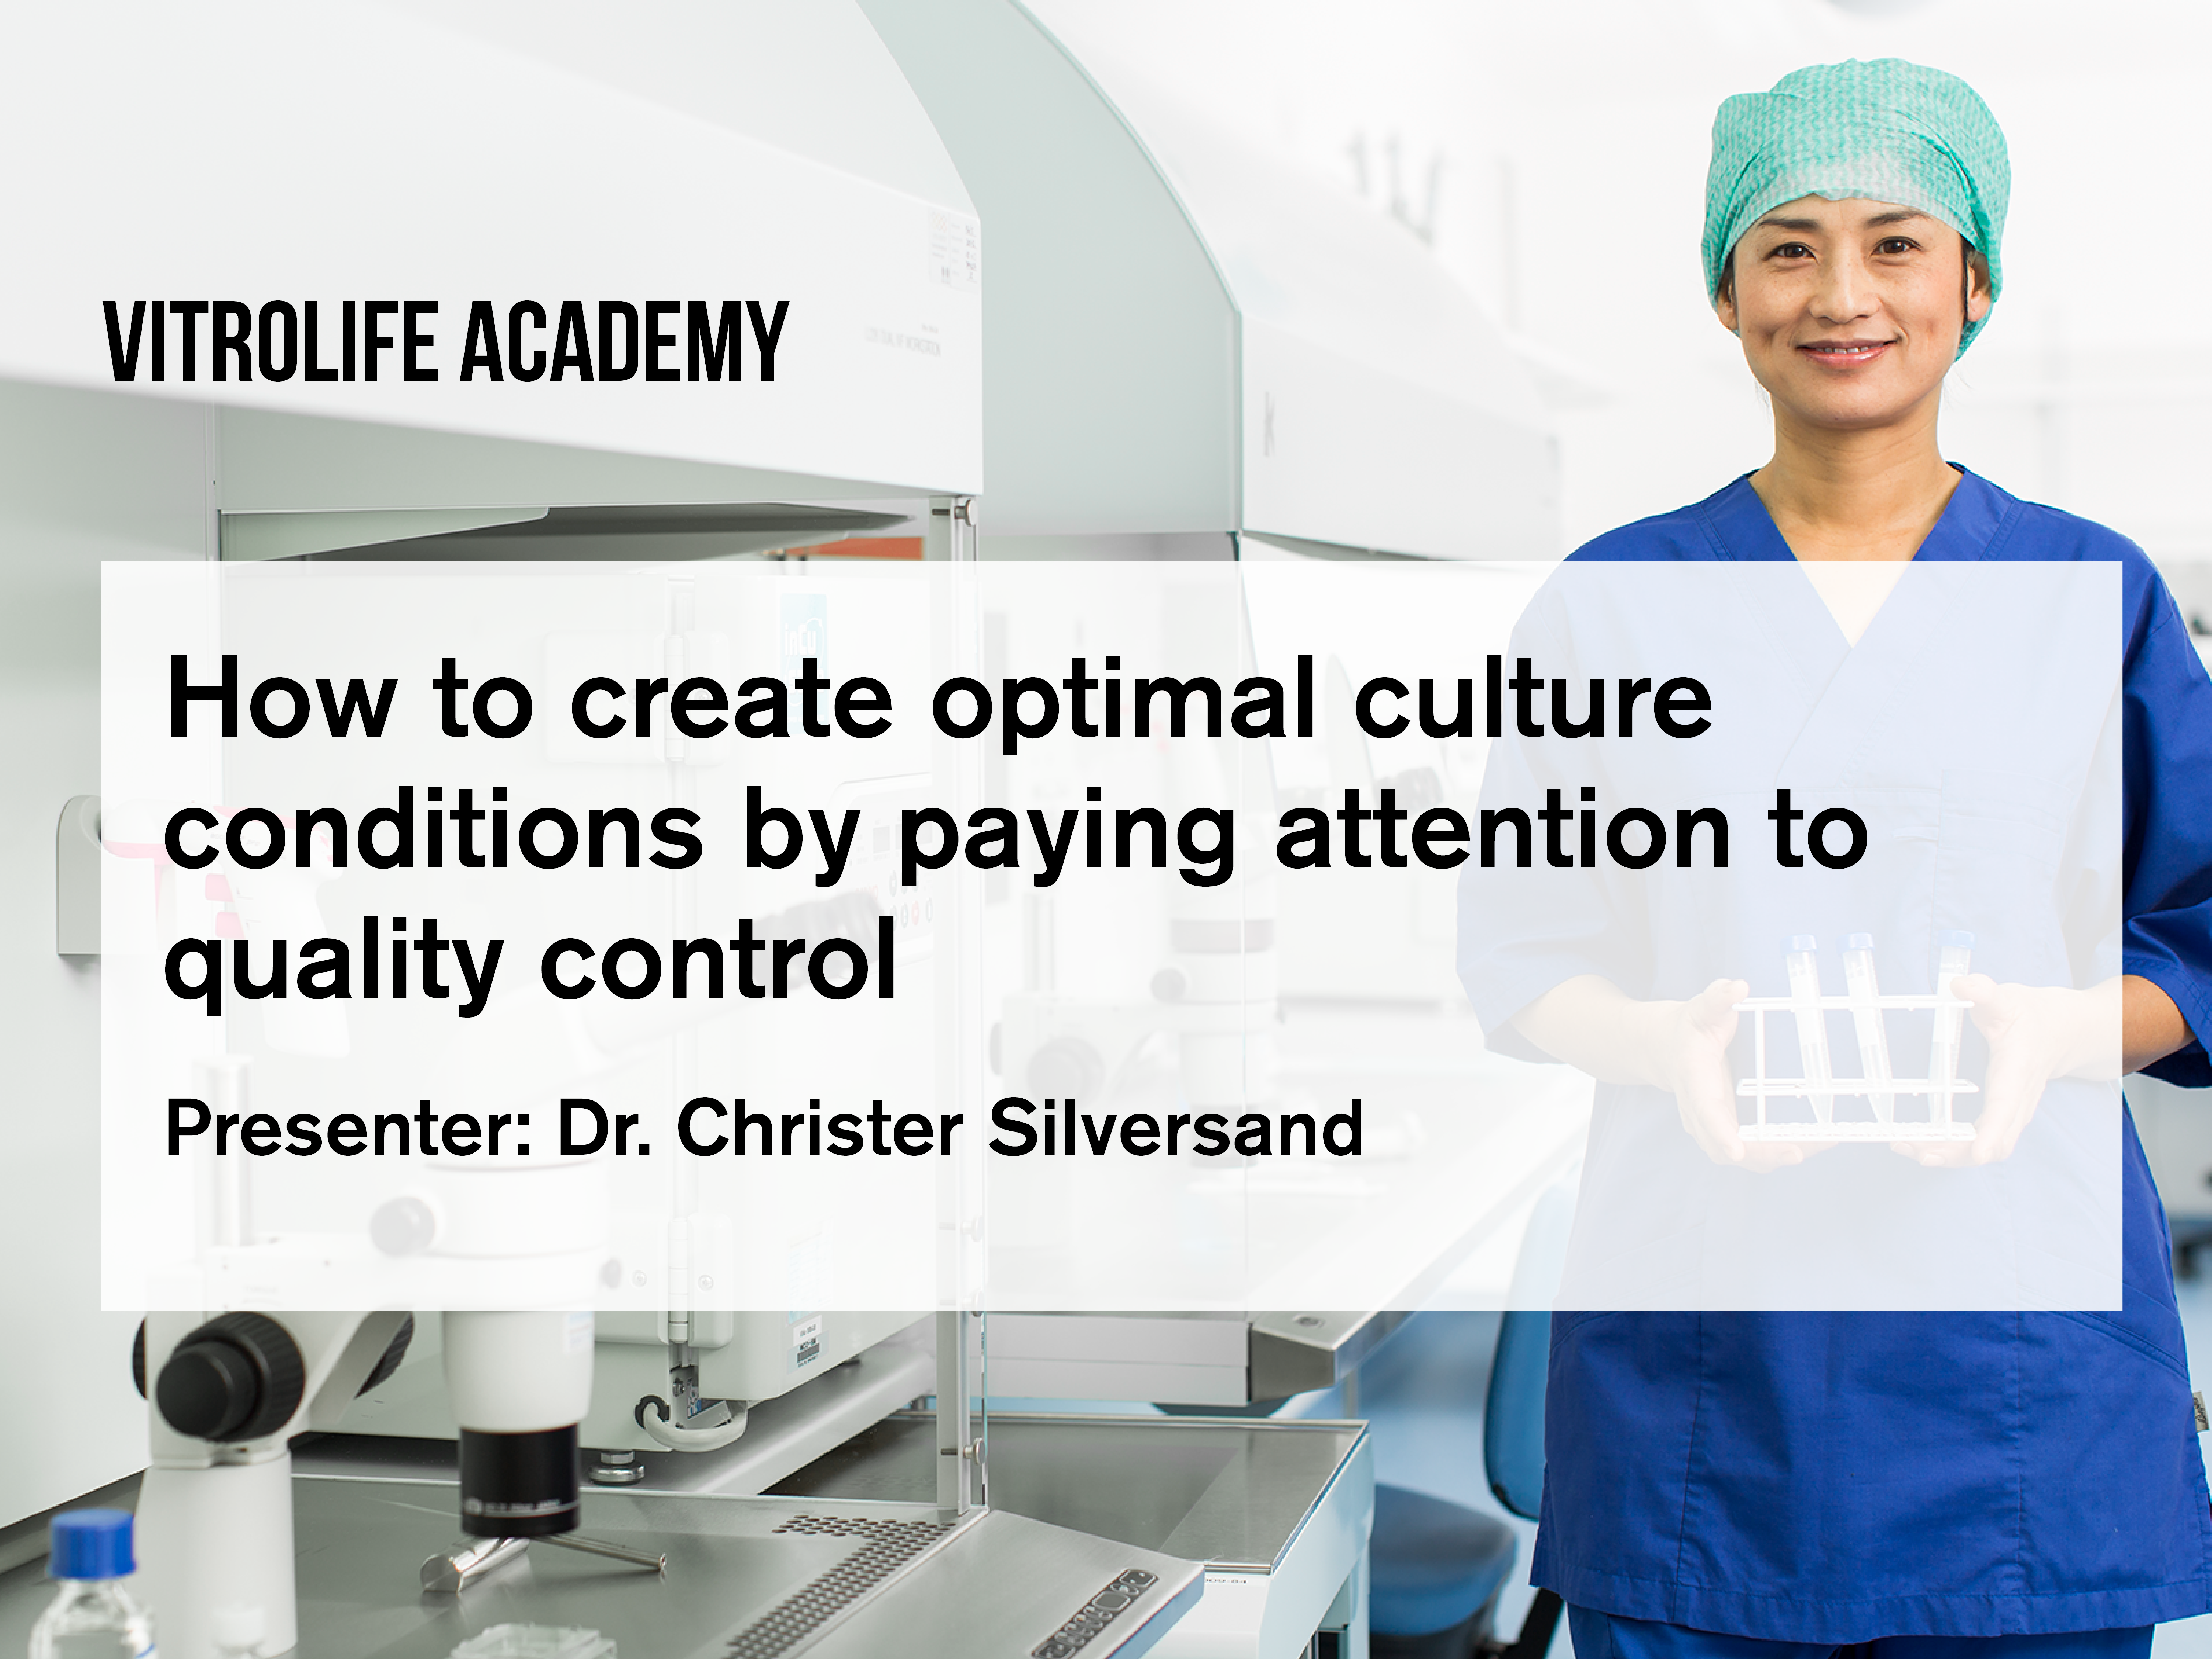 2017_November_How to create optimal culture conditions by paying attention to quality control_1440x1080_v2